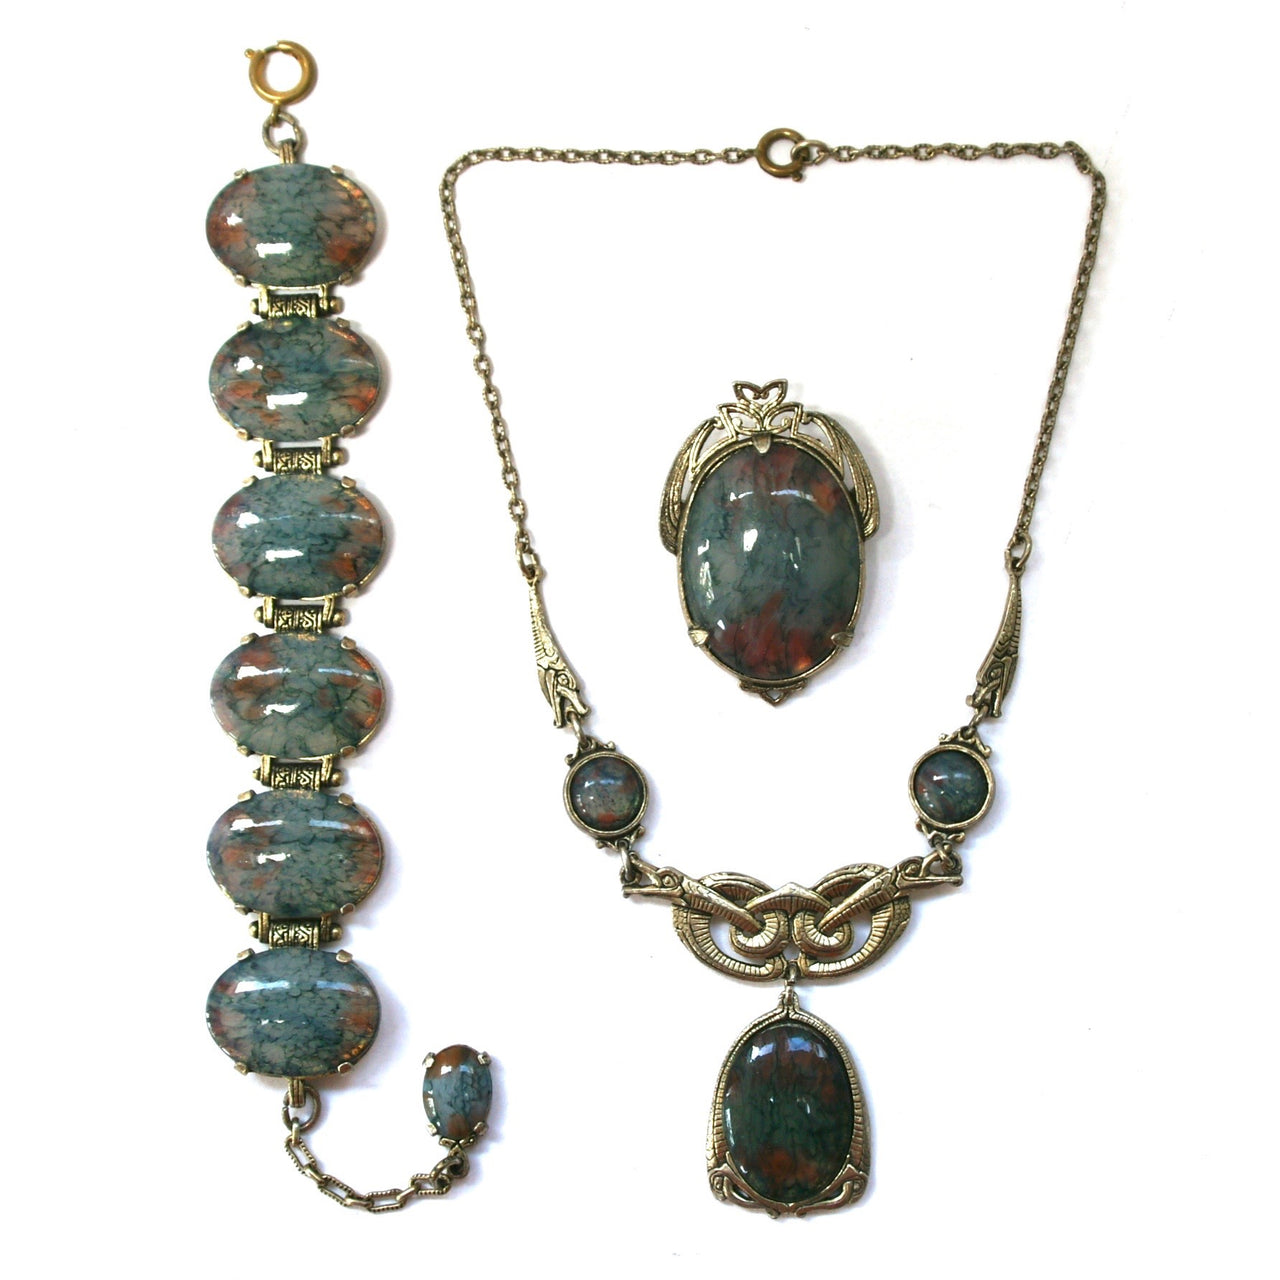 1960s Miracle Necklace, Brooch and Bracelet Set, Blue